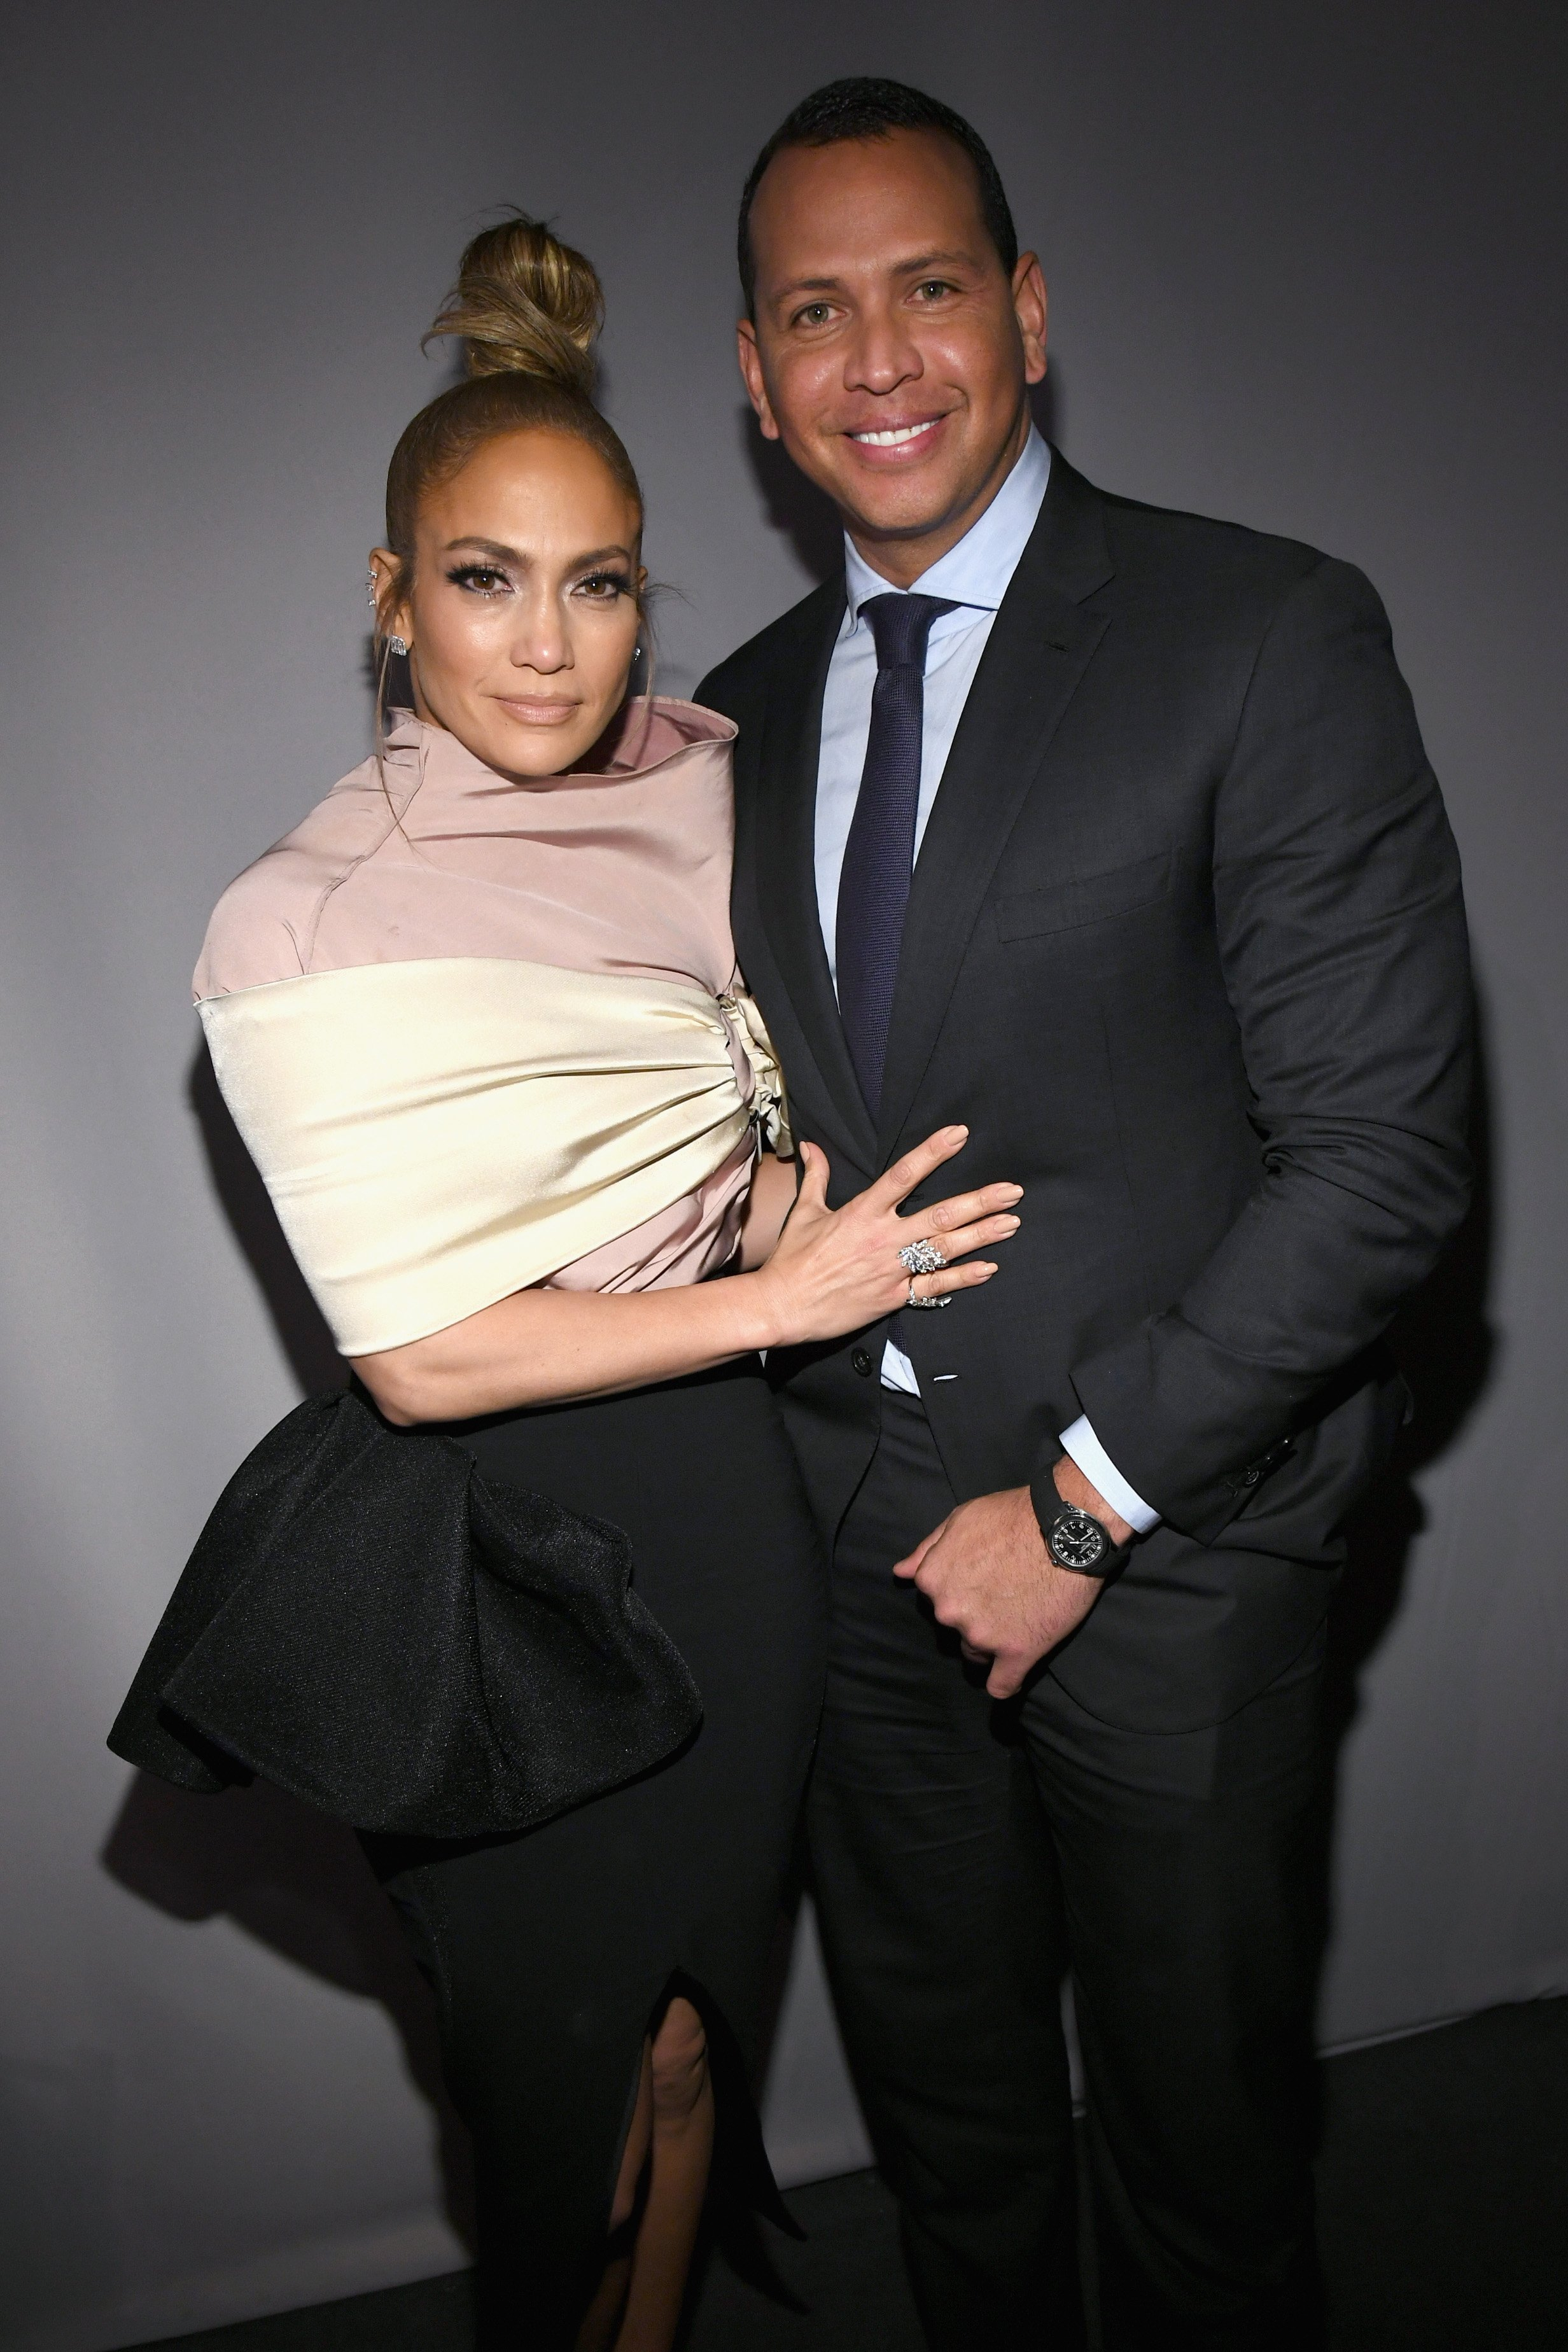 Jennifer Lopez and Alex Rodriguez attend ELLE's 25th Annual Women In Hollywood Celebration on October 15, 2018, in Los Angeles, California. | Source: Getty Images.